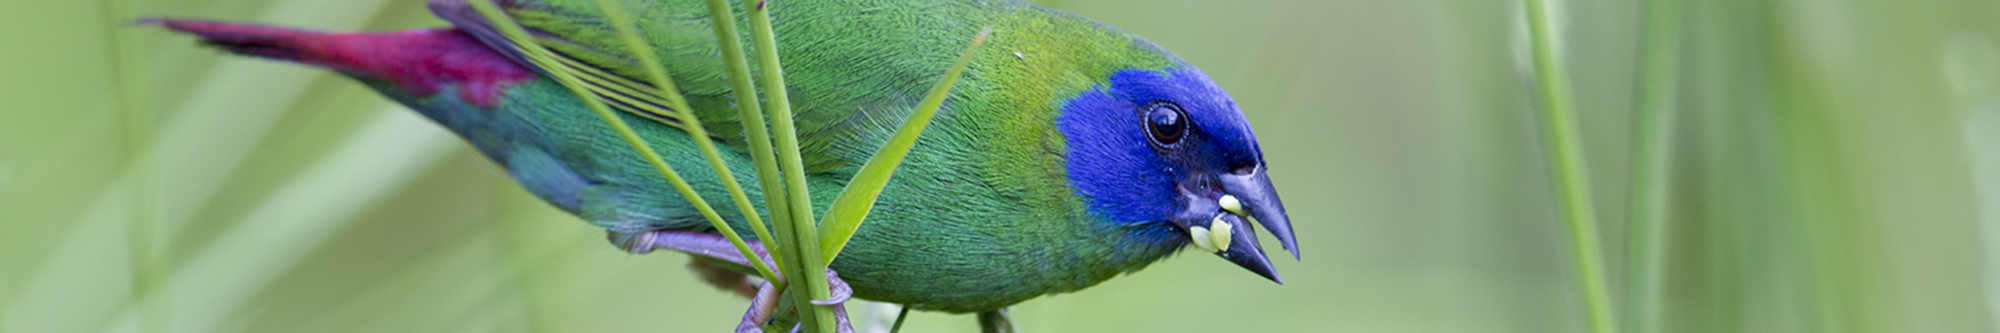 Blue-faced Parrot Finch (Male).